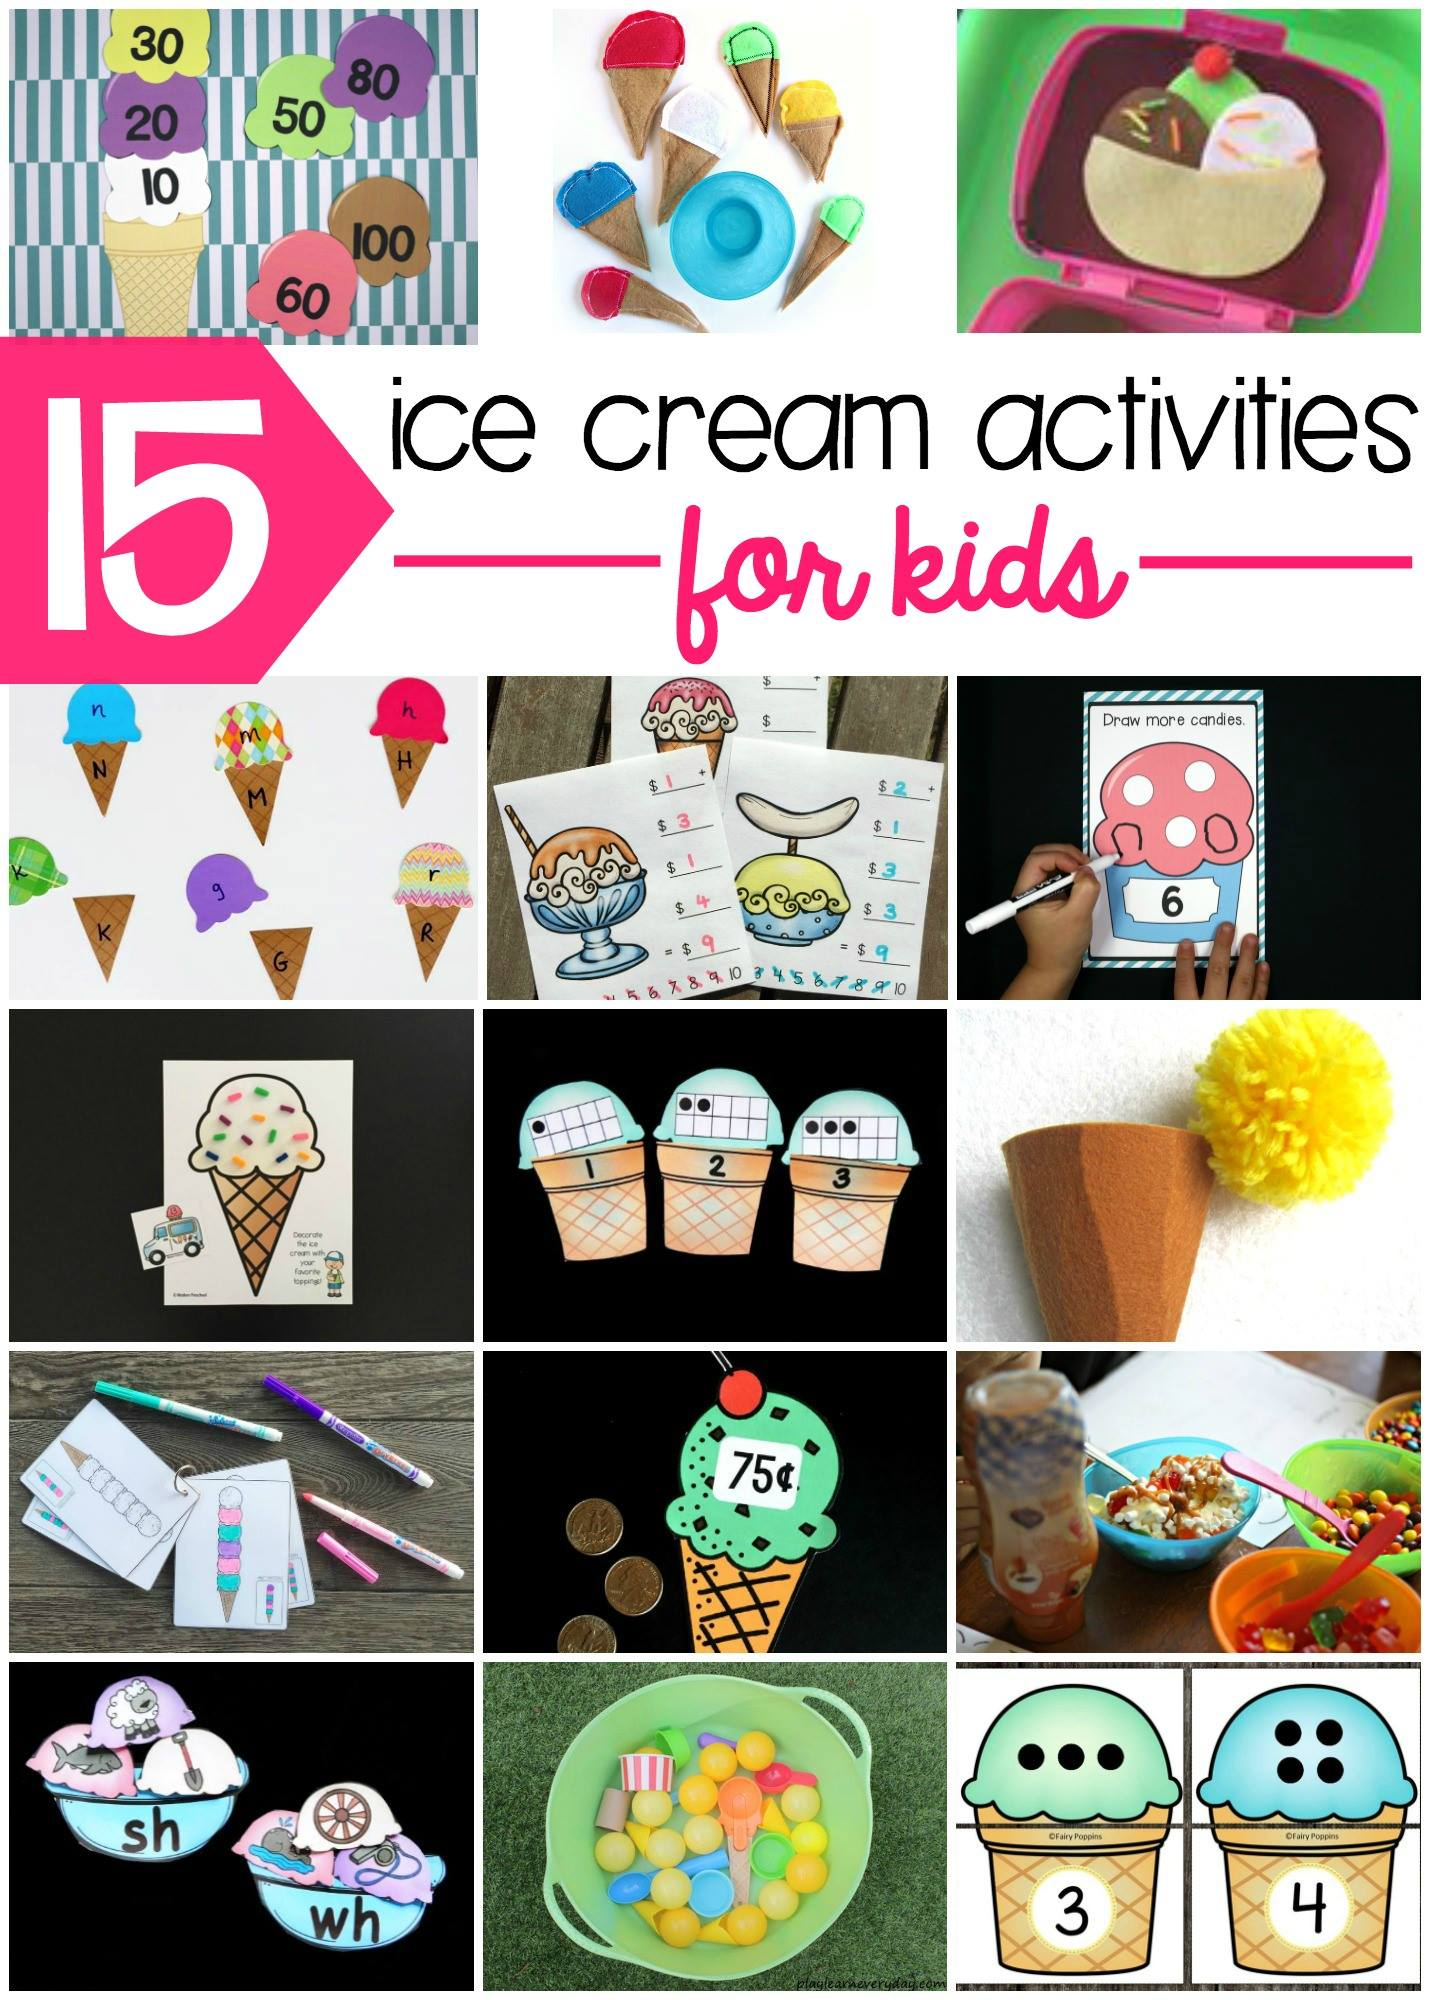 15 ice cream activities for kids